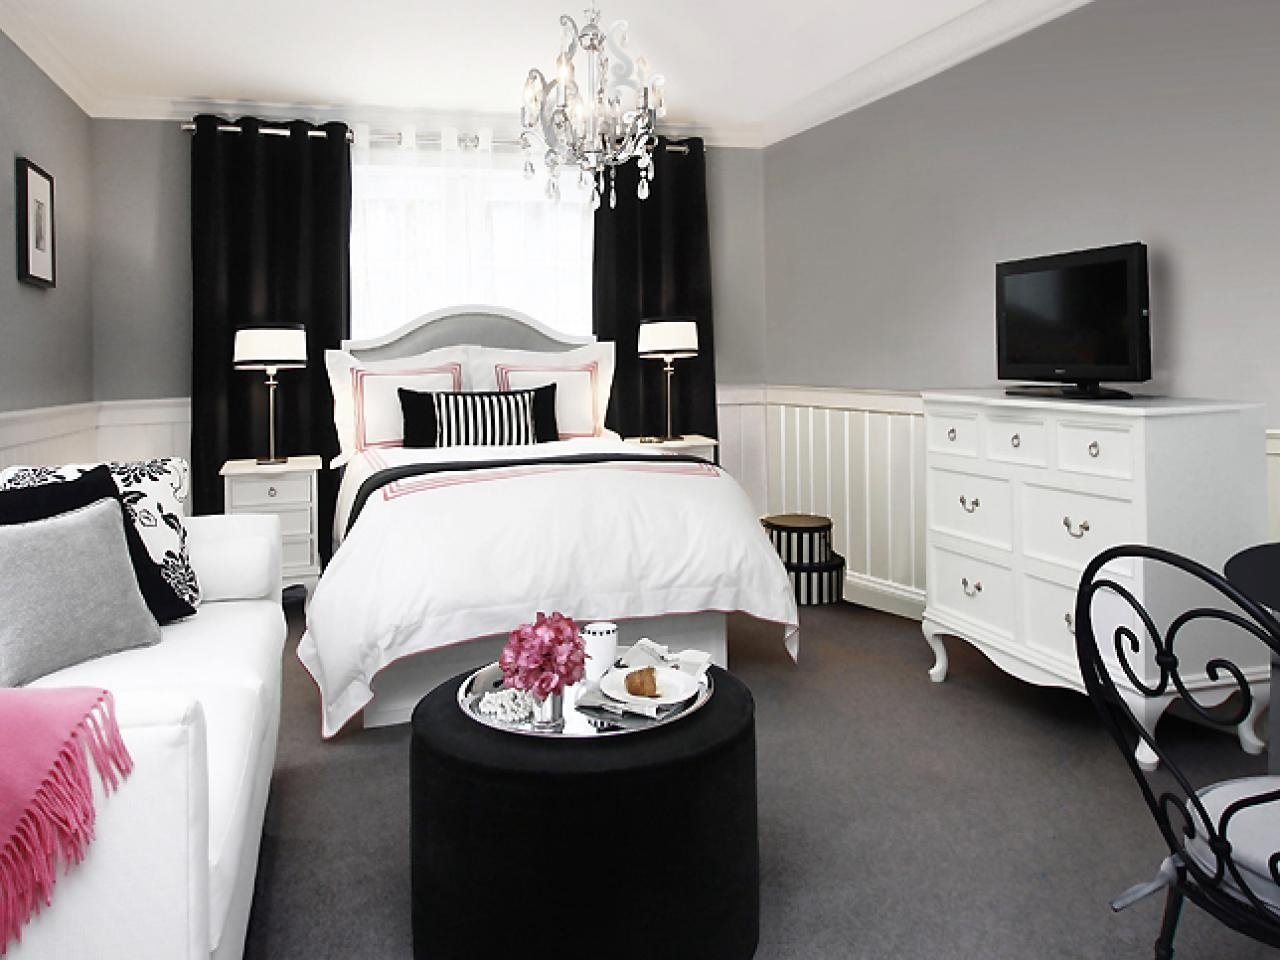 10 Most Recommended Pink Black And White Room Ideas relaxing white bedroom furniture for adults womenmisbehavin 1 2020